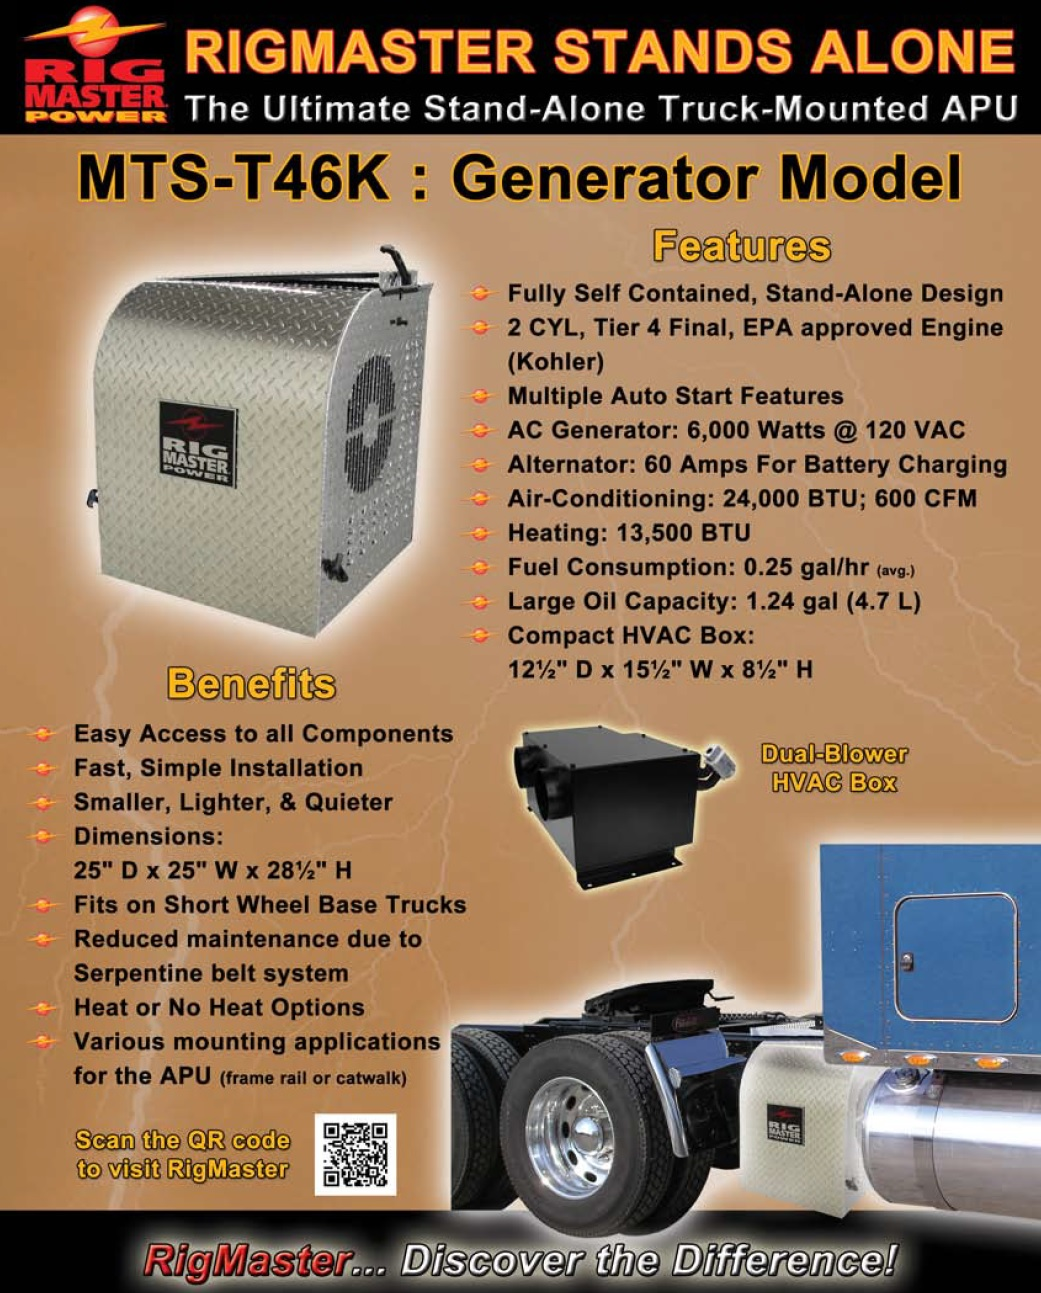 Rigmaster Generator Wiring Diagram Reveolution Of John Deere Model 60 Big Rig Products Truck Apu Autos Post Diagrams